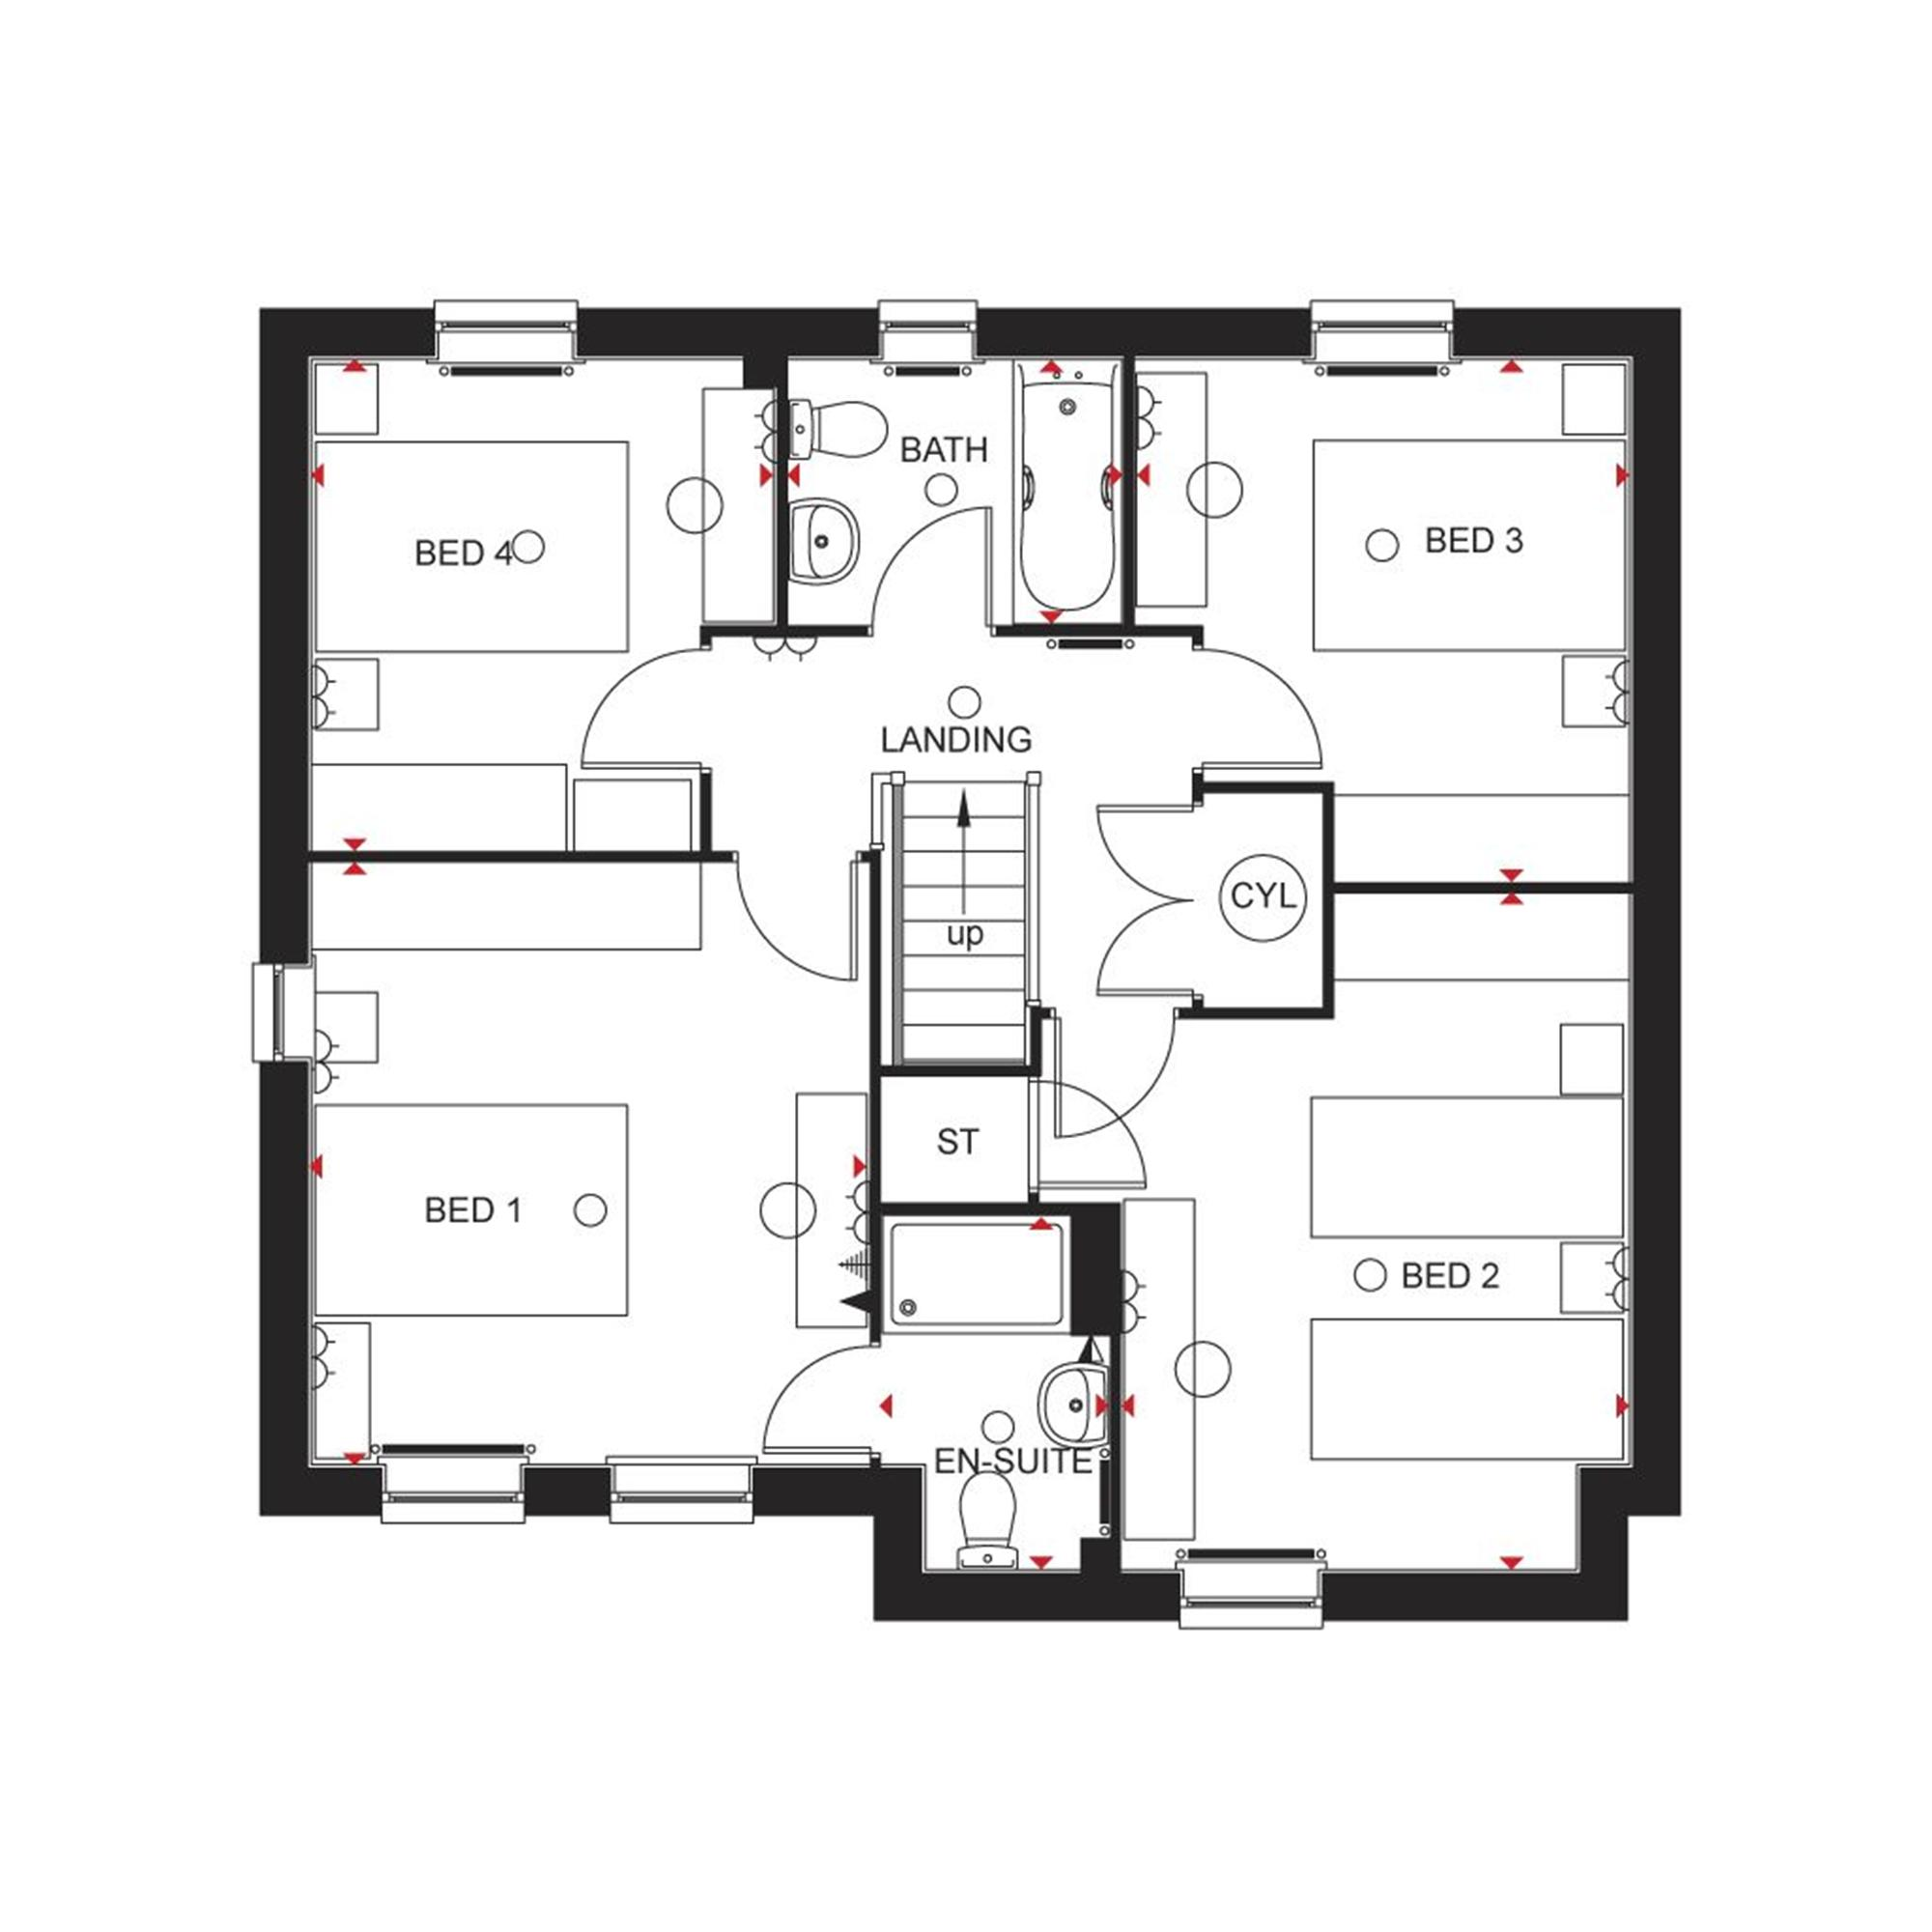 Barratt homes cambridge floor plan as well 48q70h together with 6258805532 additionally Architecture Blueprint Of A House Vector 5048091 moreover Bedroom Bathroom Floor Plan Kitchen Living Room. on free small house plans